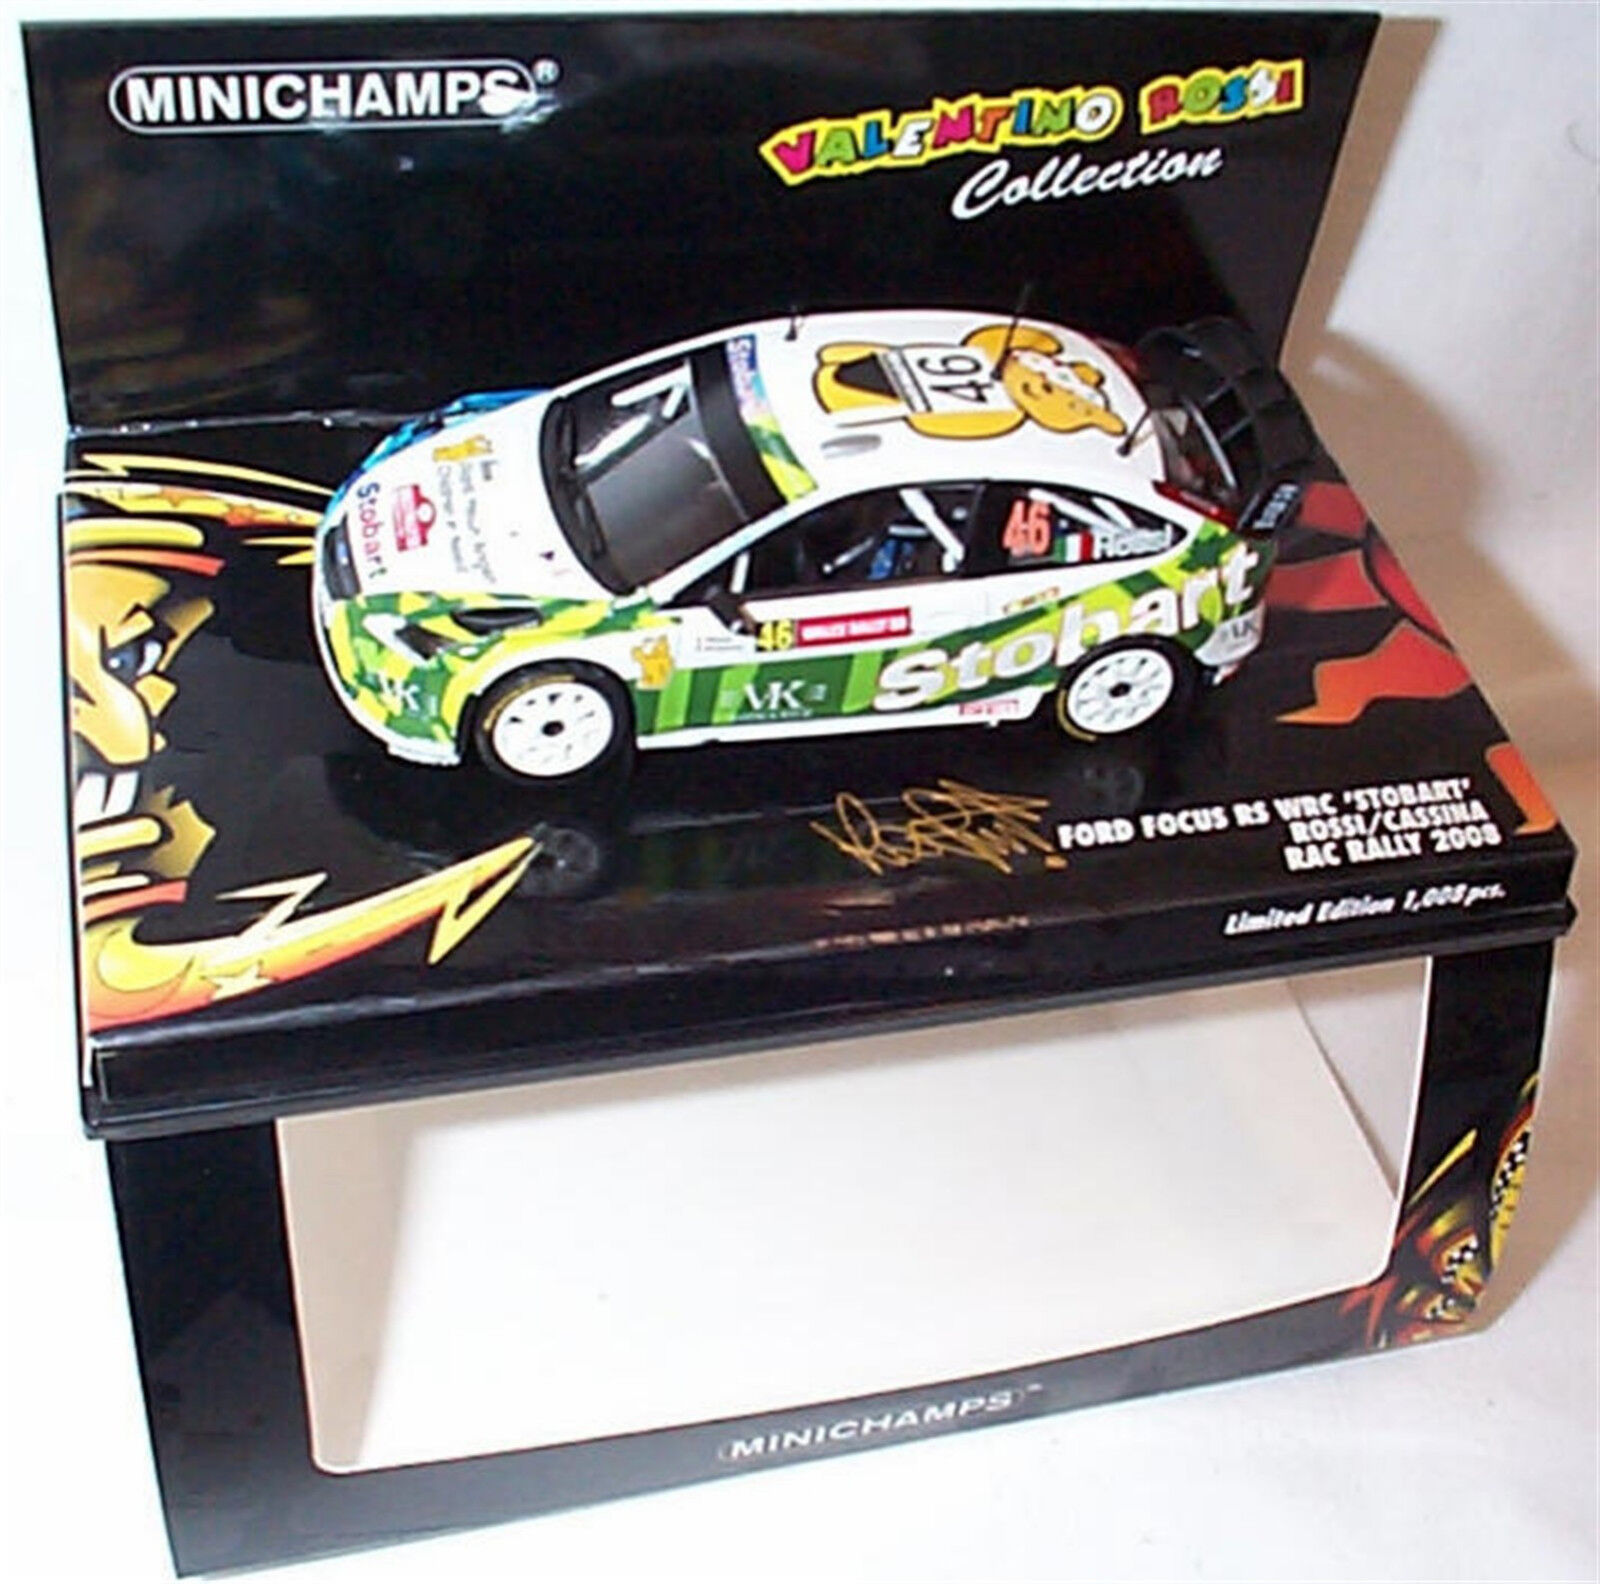 Ford Focus RS WRC Stobart Valentino Rossi Rac Rally 2008 ltd ed Mib 400088146